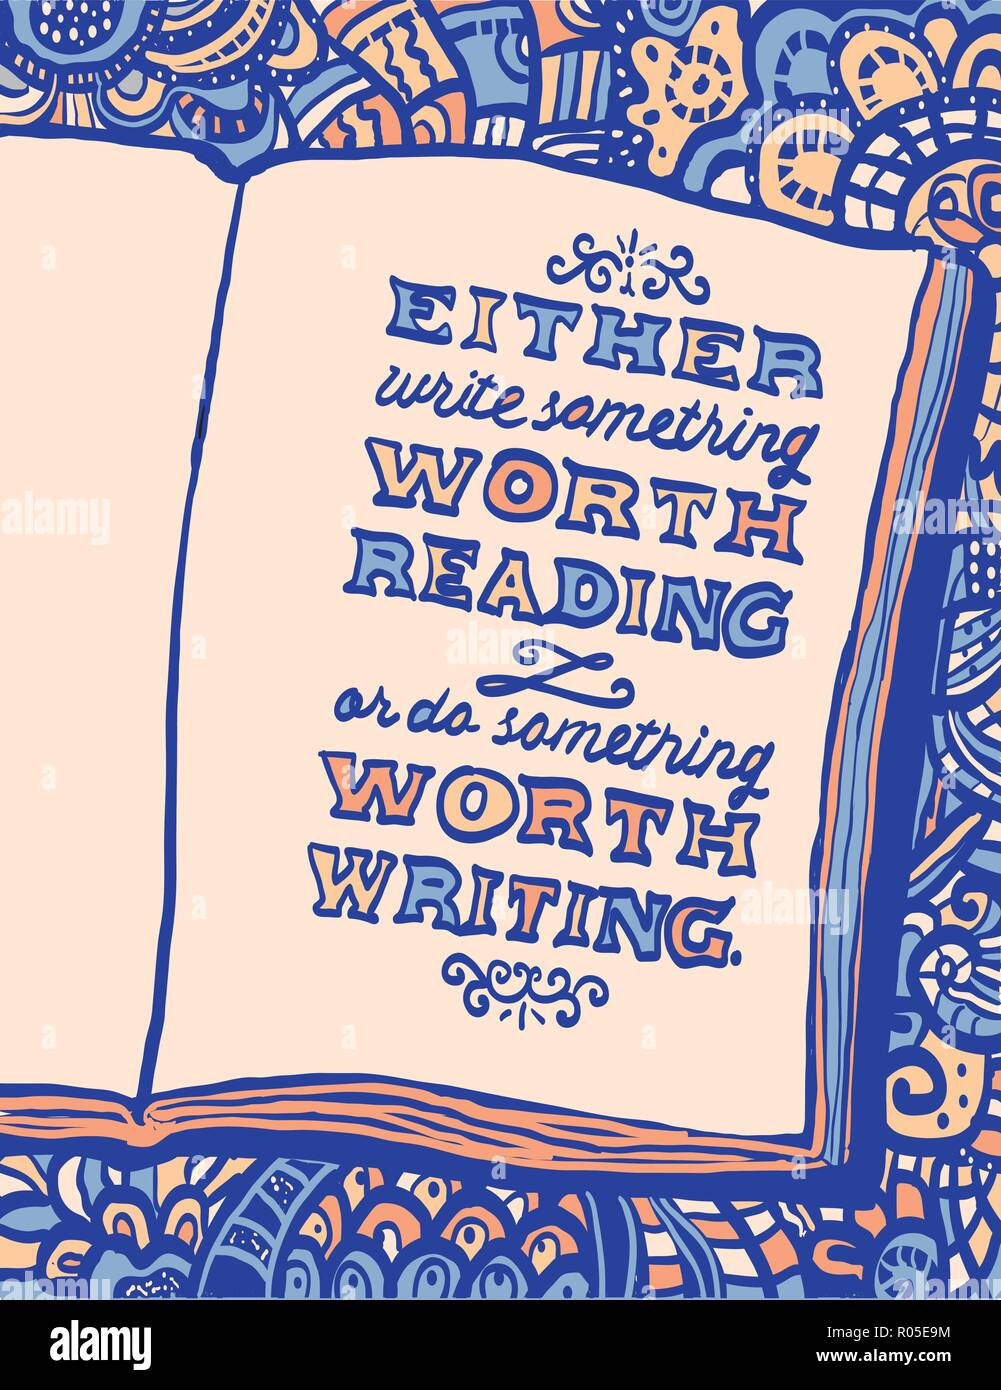 Illustration with notebook and Benjamin Franklin's quote 'Either write something worth reading or do something worth writing.' Doodle background.  Col - Stock Vector